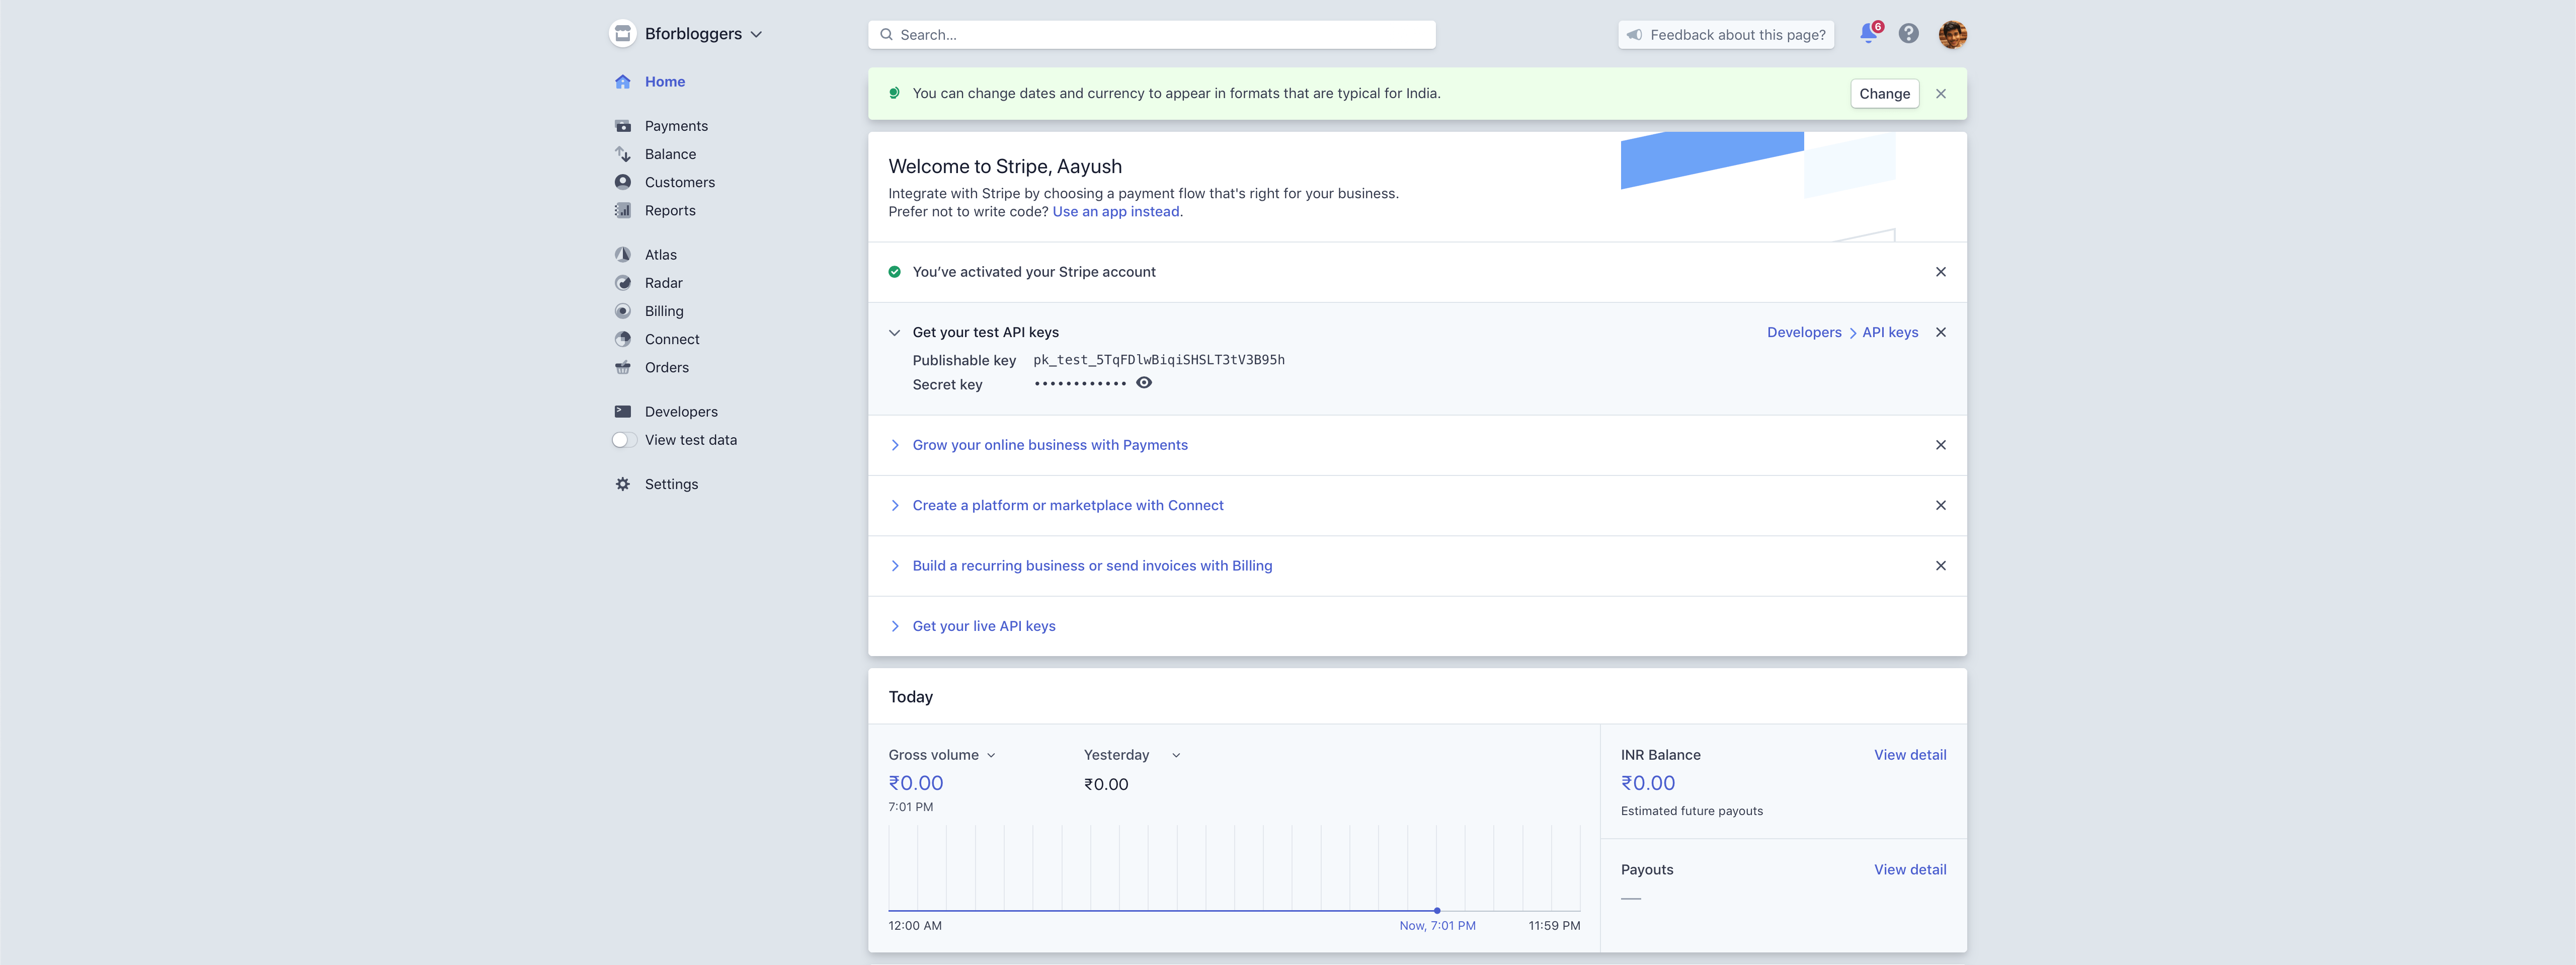 stripe-open-for-accepting-payments-in-india